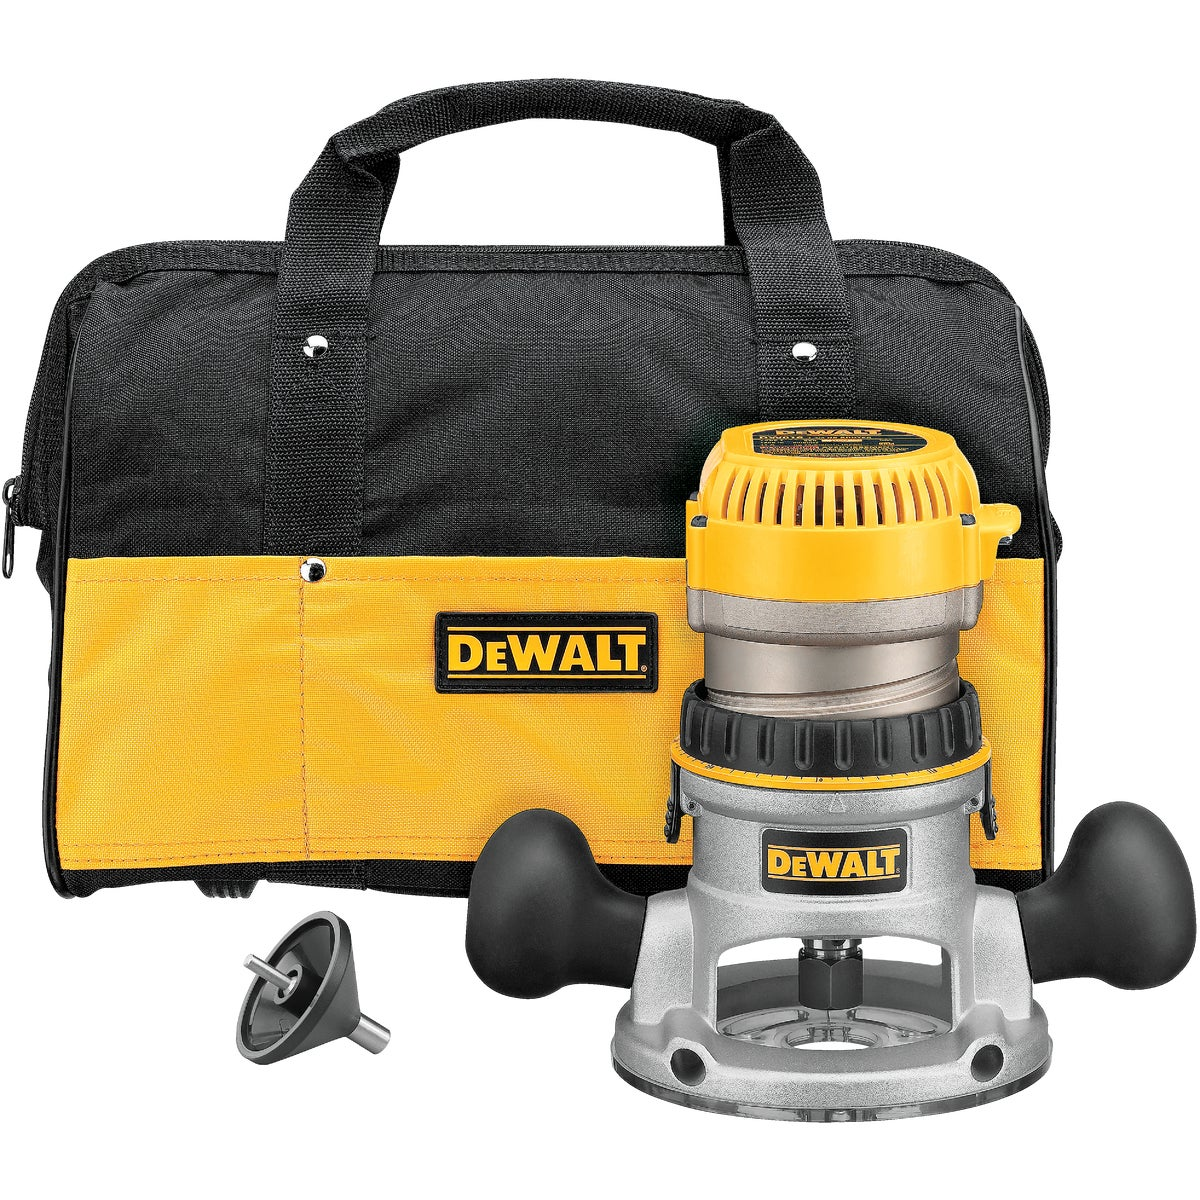 1-3/4HP ROUTER KIT - DW616K by DeWalt